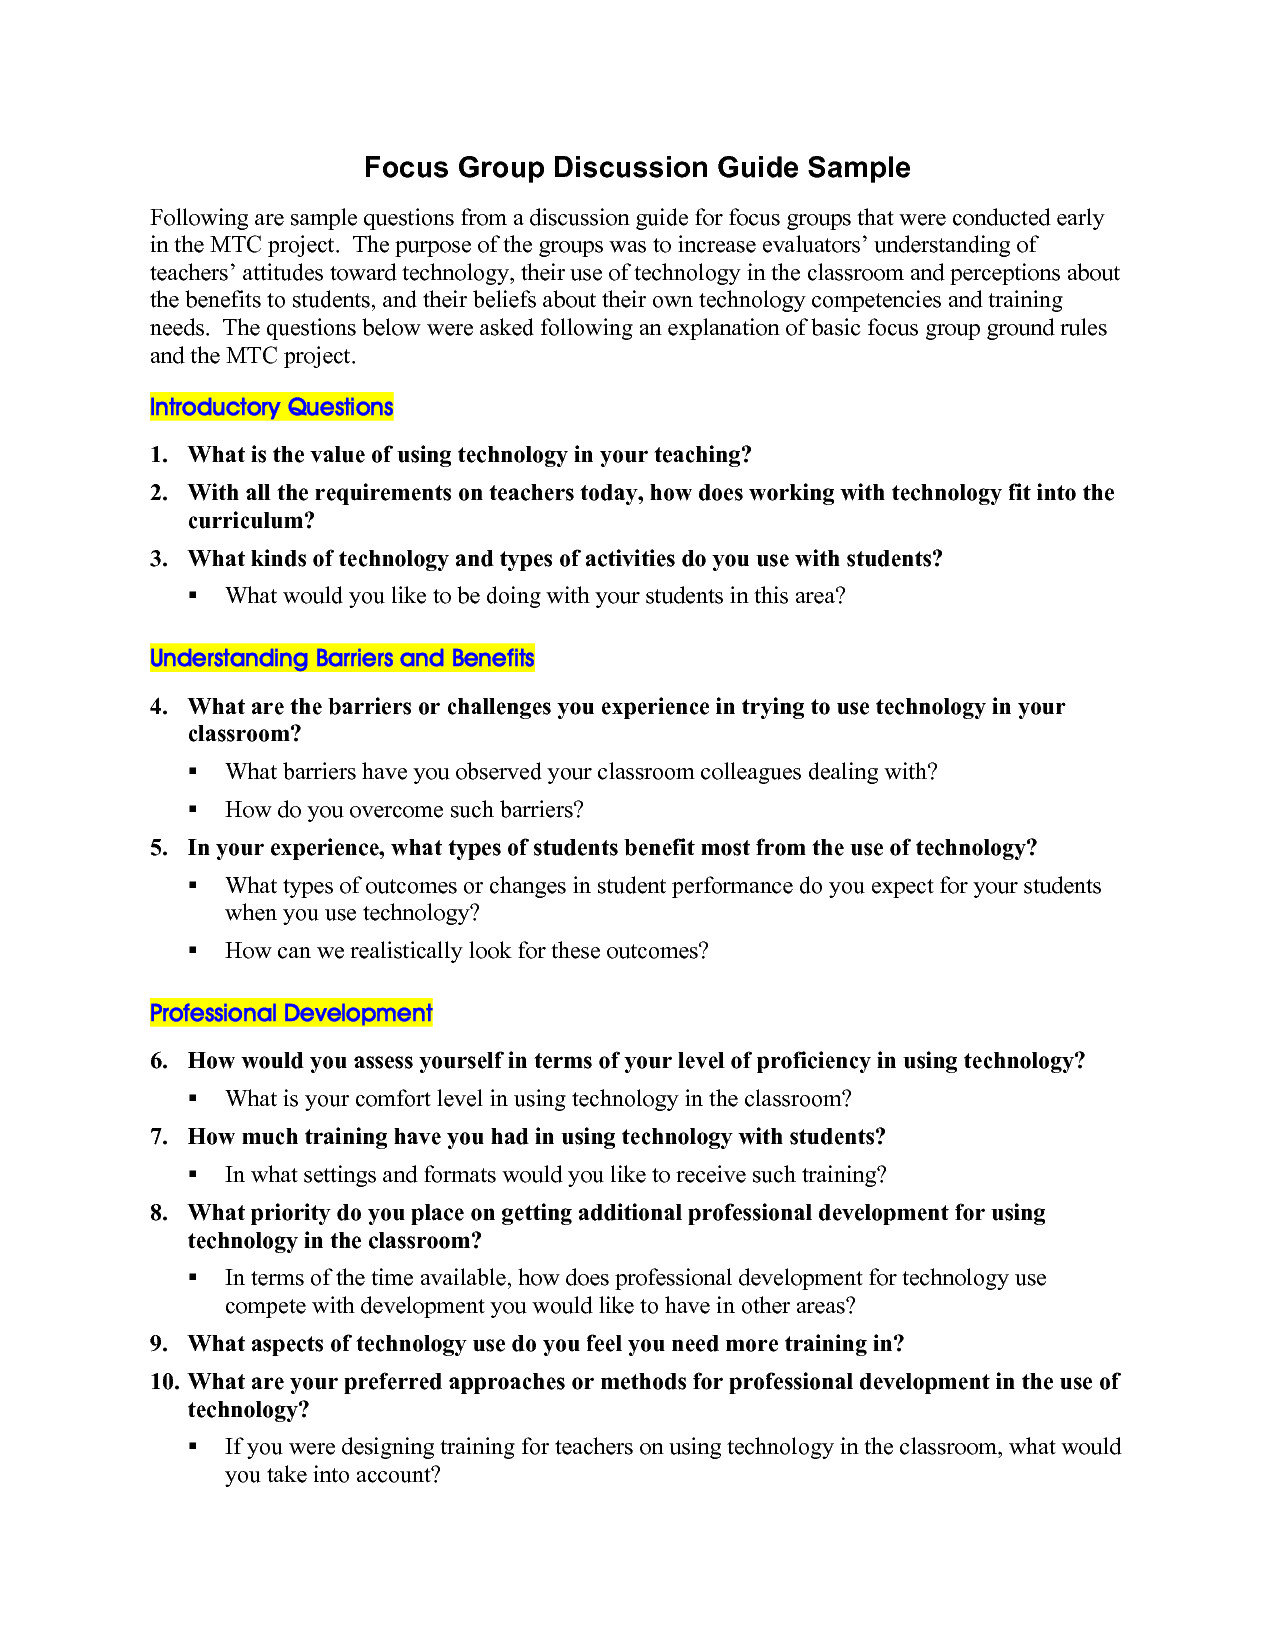 Focus Group Discussion Report Template Best Photos Of Sample Interview Guide Template Tell Me